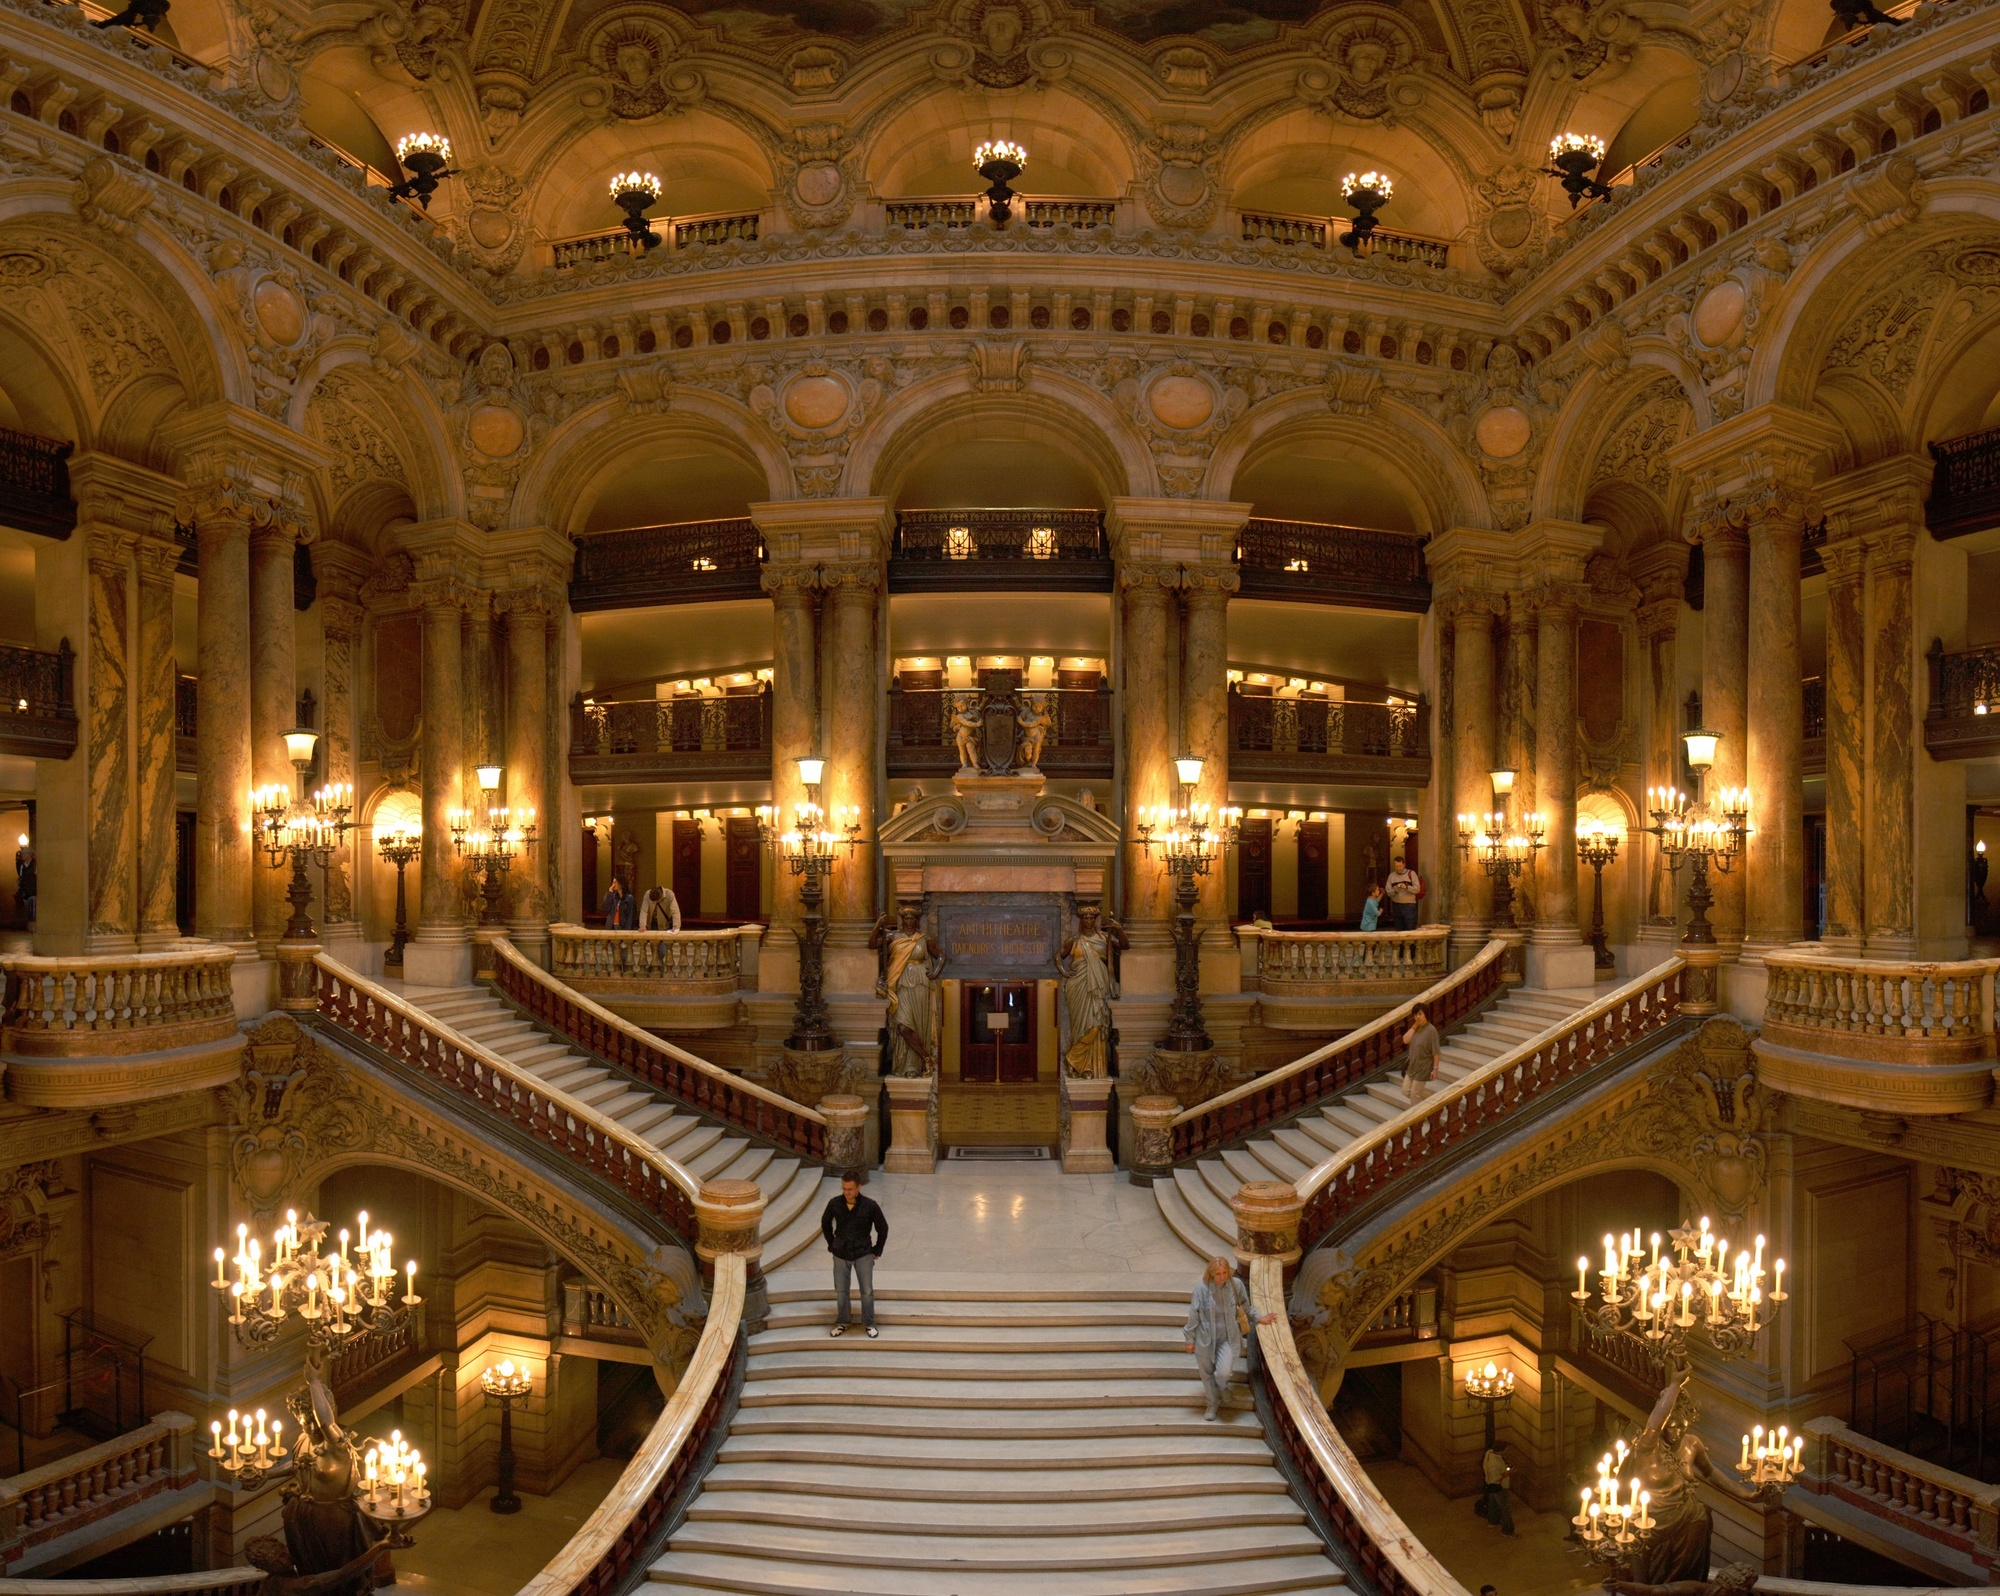 File:Opera Garnier Grand Escalier.jpg - Wikimedia Commons